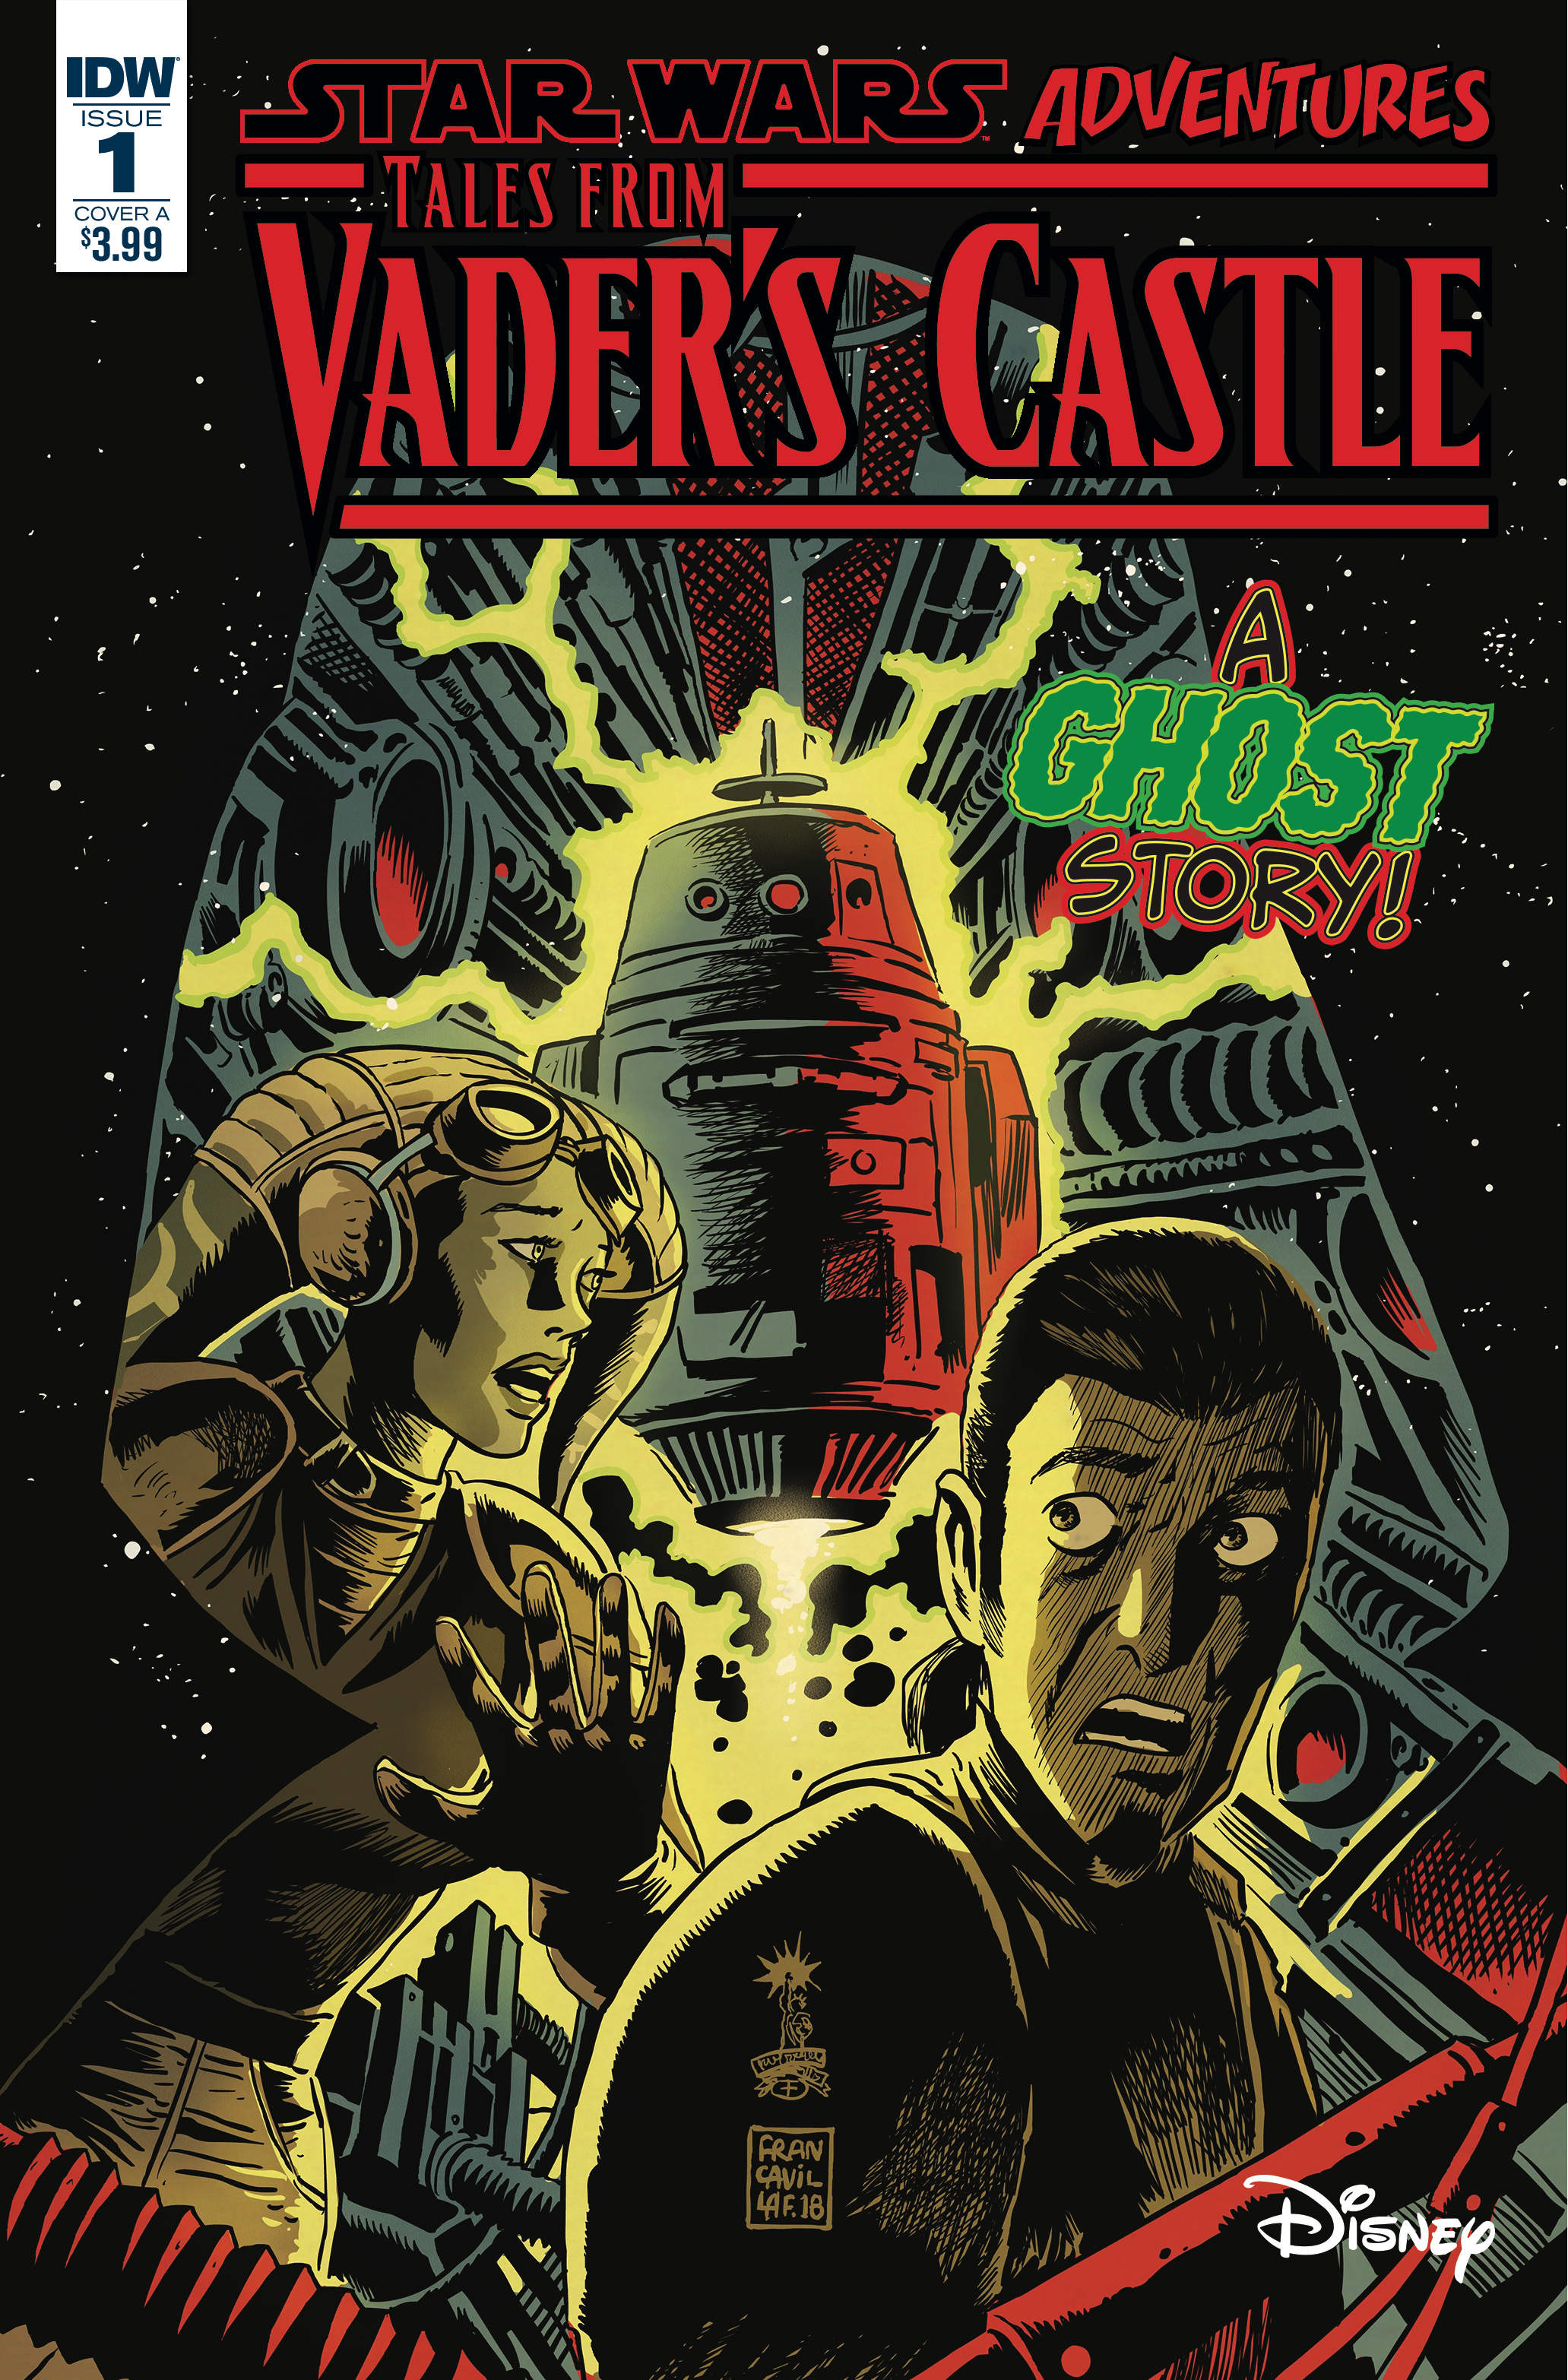 STAR WARS TALES FROM VADERS CASTLE #1 (OF 5) CVR A FRANCAVIL